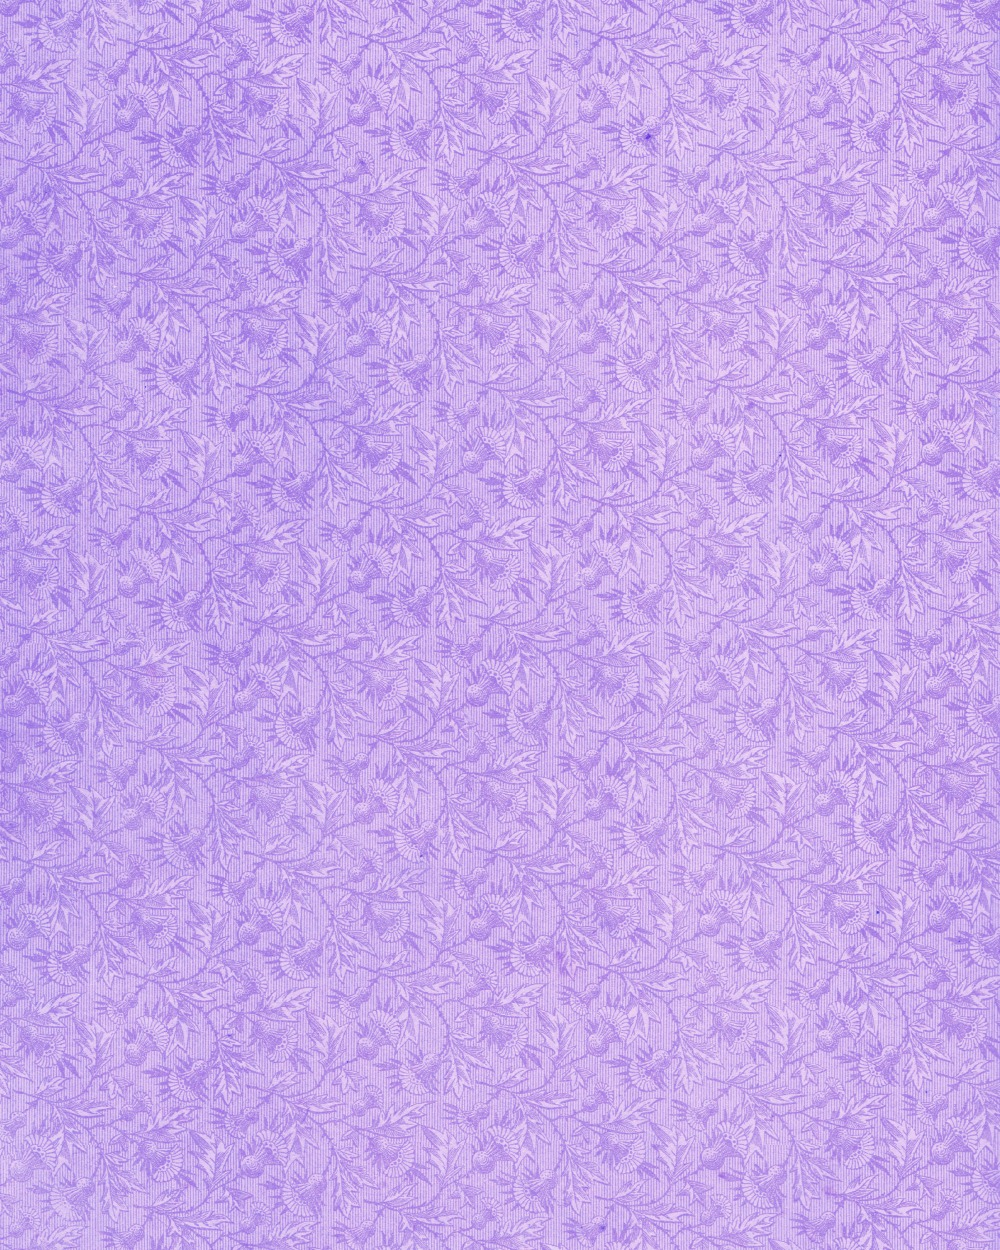 Free Floral Paper Backgrounds on Budget Home Designs